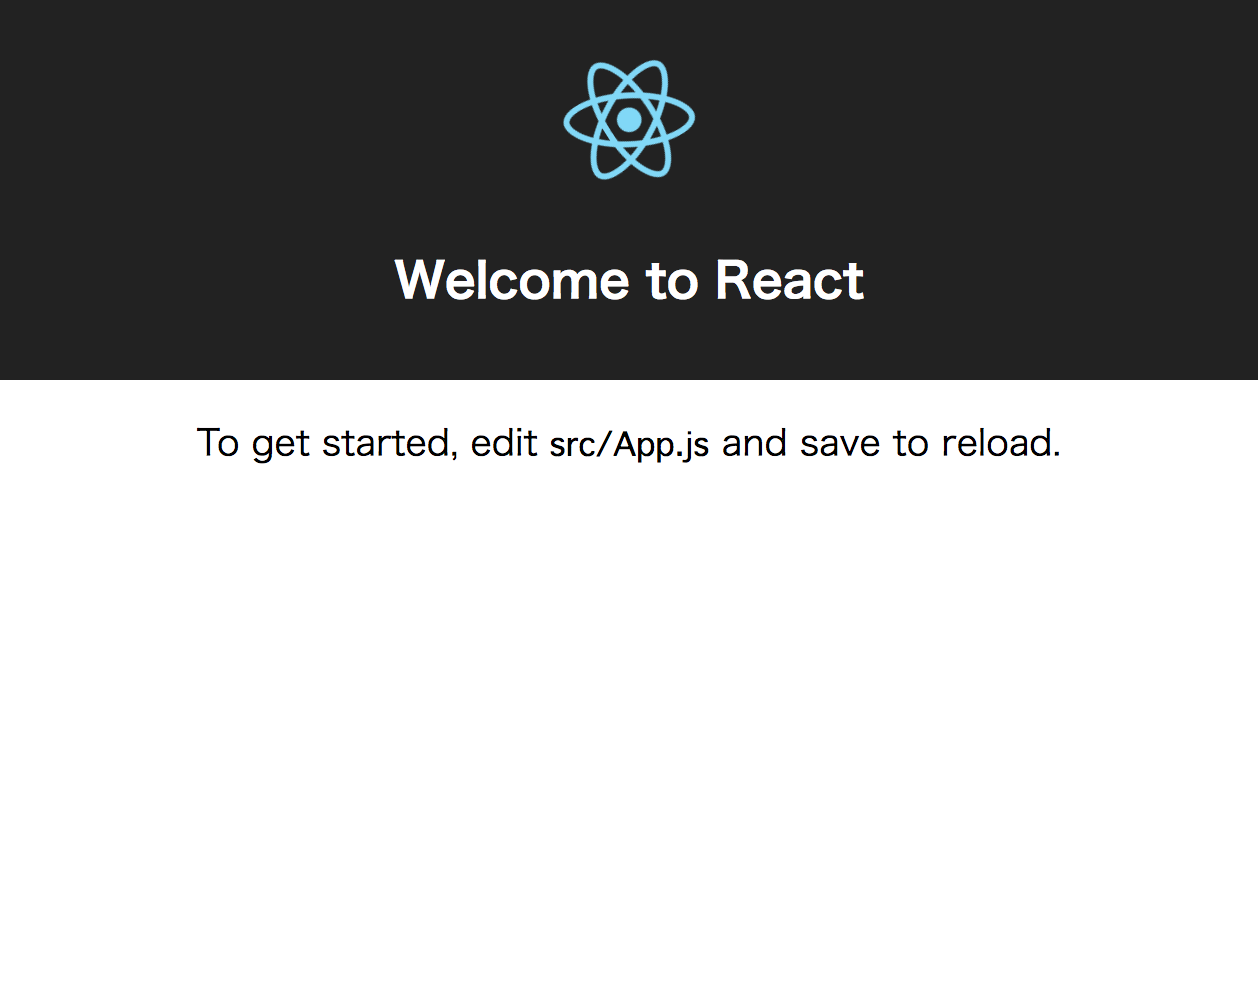 FireShot Capture 22 - React App - http___localhost_3000_.png